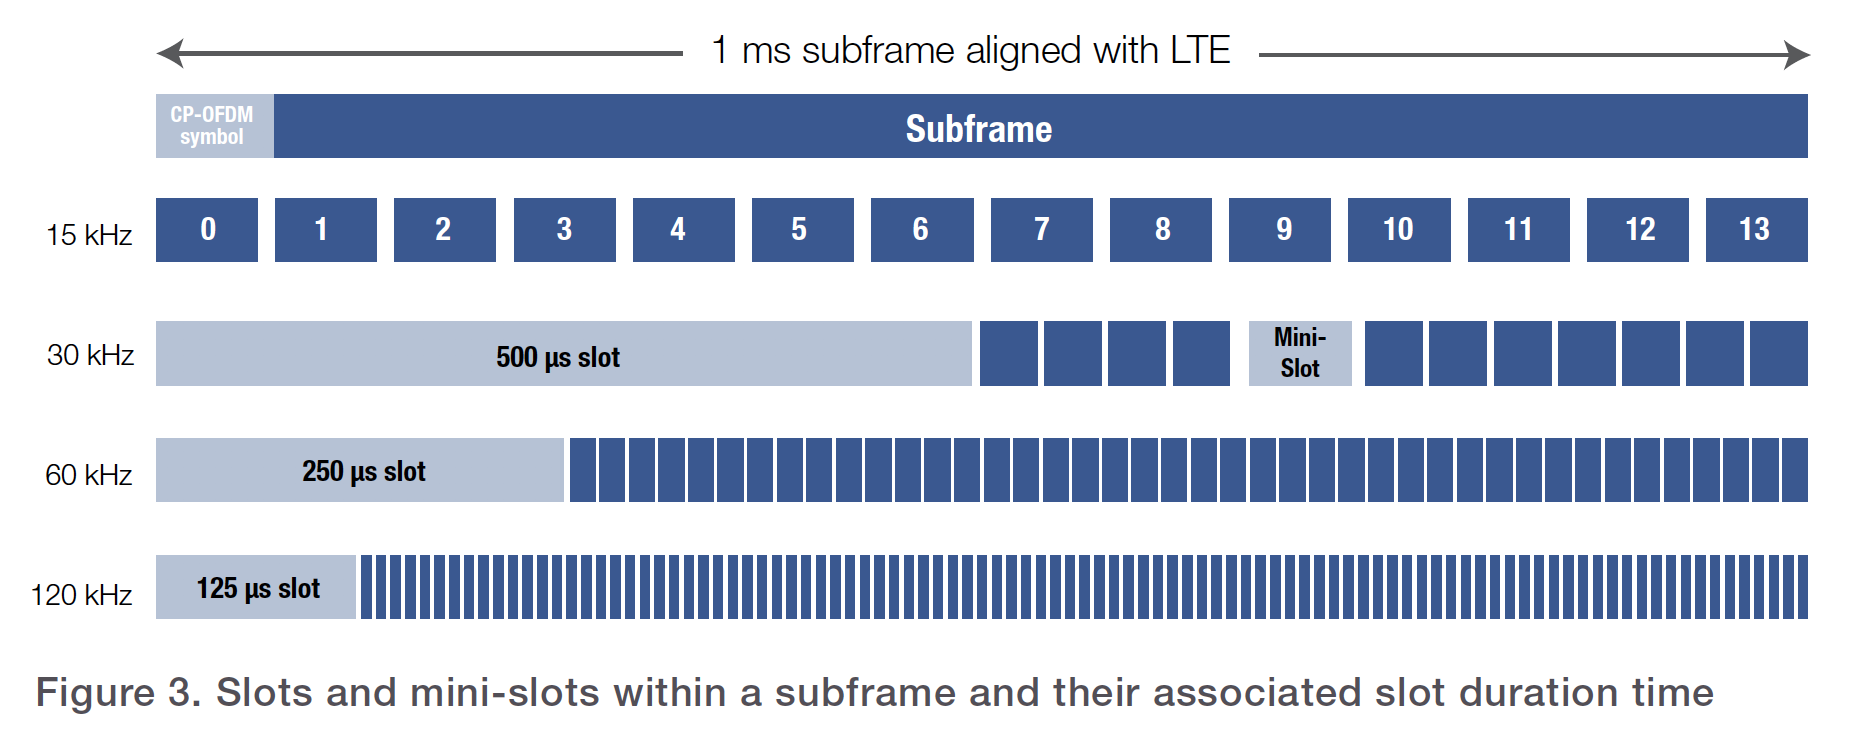 Figure 3. Slots and mini-slots within a subframe and their associated slot duration time